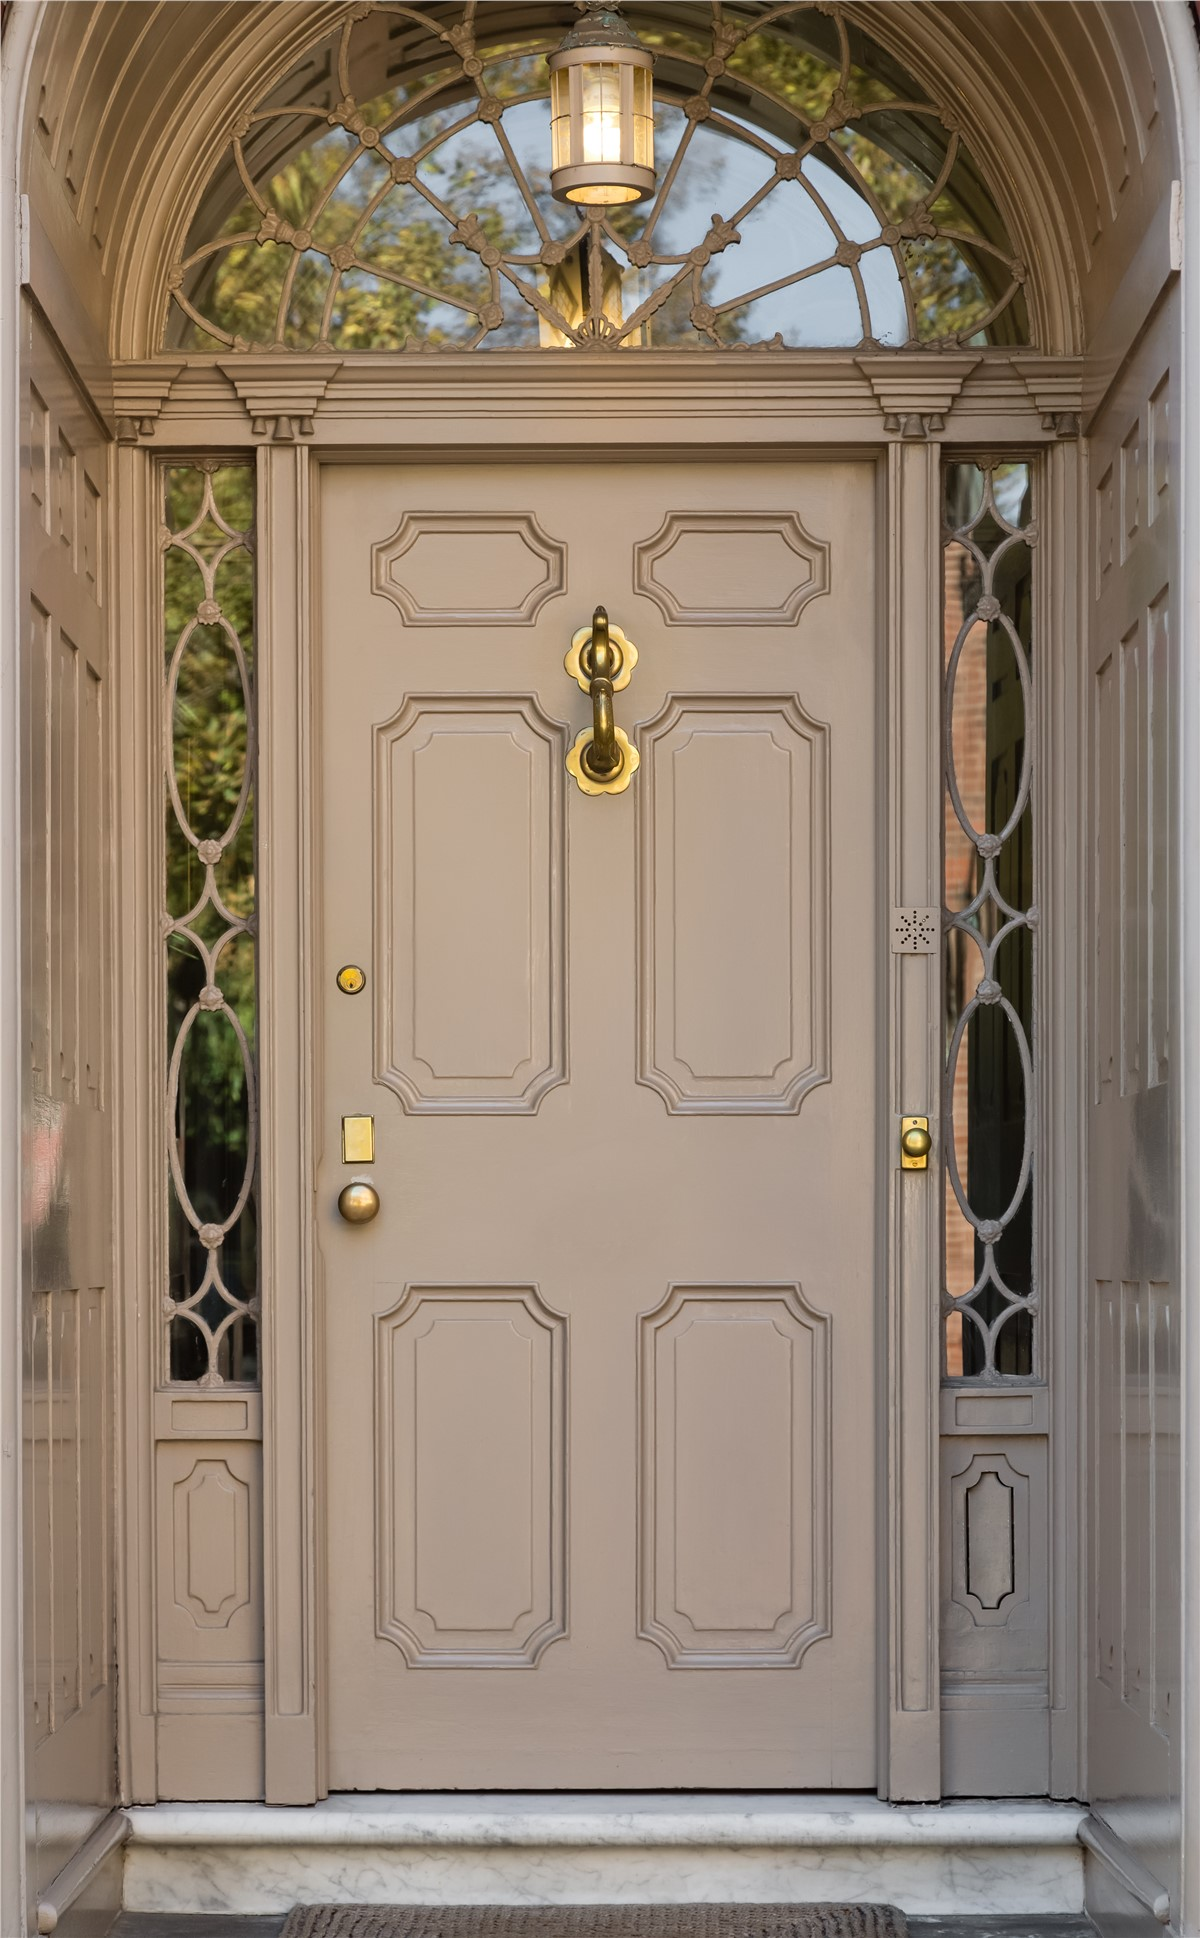 Metal Entrance Doors : Kansas city steel entry doors kc alenco